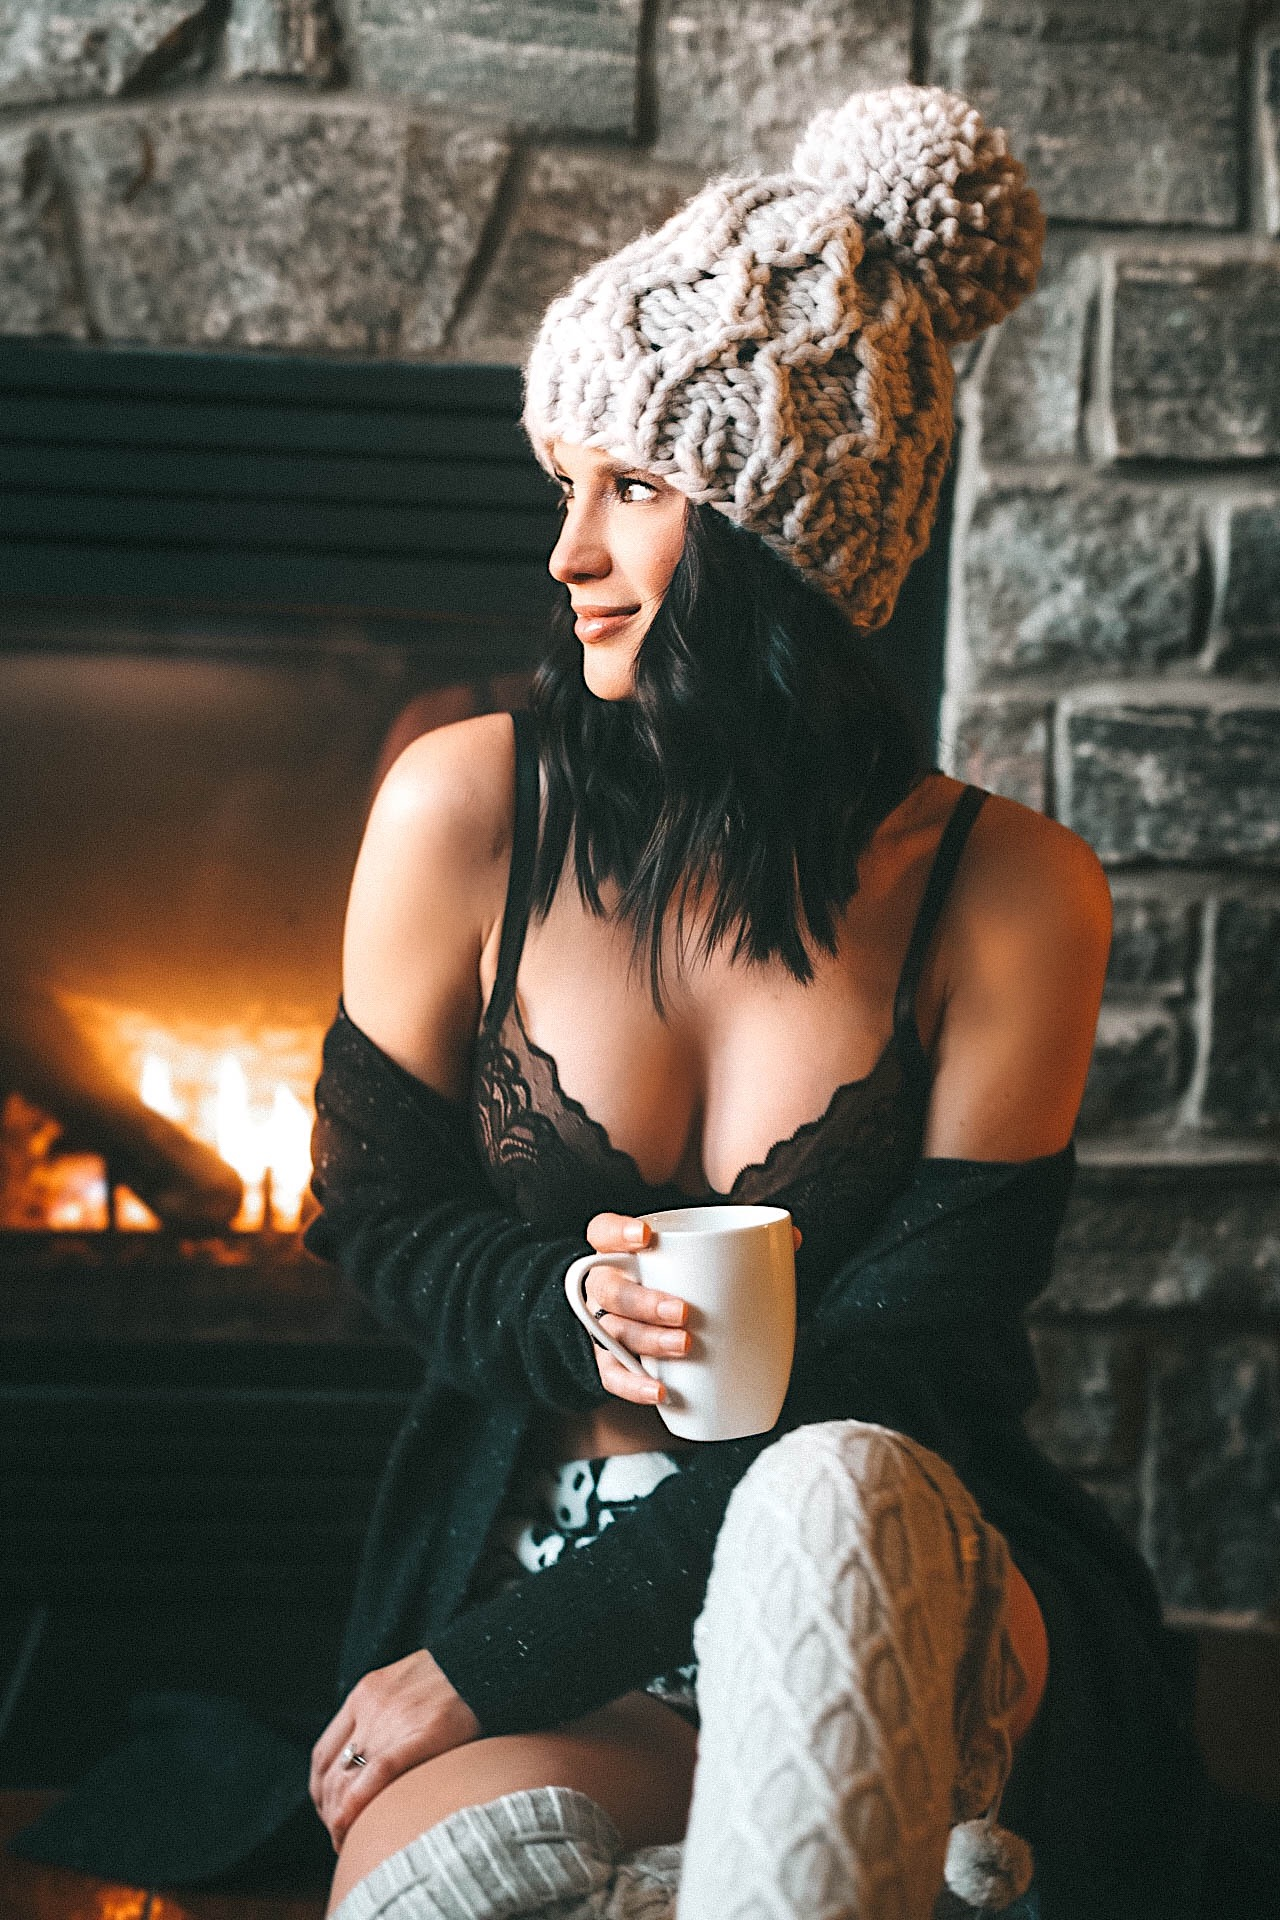 DTKAustin is sharing the most comfortable Lace bralette B.Temp'd bralette from the Macy's Semi-Annual Lingerie Sale. Bralette is from B.Temp'd, Cashmere cardigan is from Autumn cashmere, Storm Trooper shorts are from Forever21, Knee high pom pom socks are from UGG and Zappos. Enjoying the gorgeous snowy view in Muskoka Ontario at the JW Marriott Lake Rosseau. || Comfortable lingerie | Lace Bralette | Black lace bra | Lingerie sale | comfortable pajamas | Best winter getaway || #lingerie #macyssale #macyslingerie #btempd #loungewear #womenslingerie | B.Temp'd bralette with support available at Macy's featured by top Austin fashion blog, Dressed to Kill